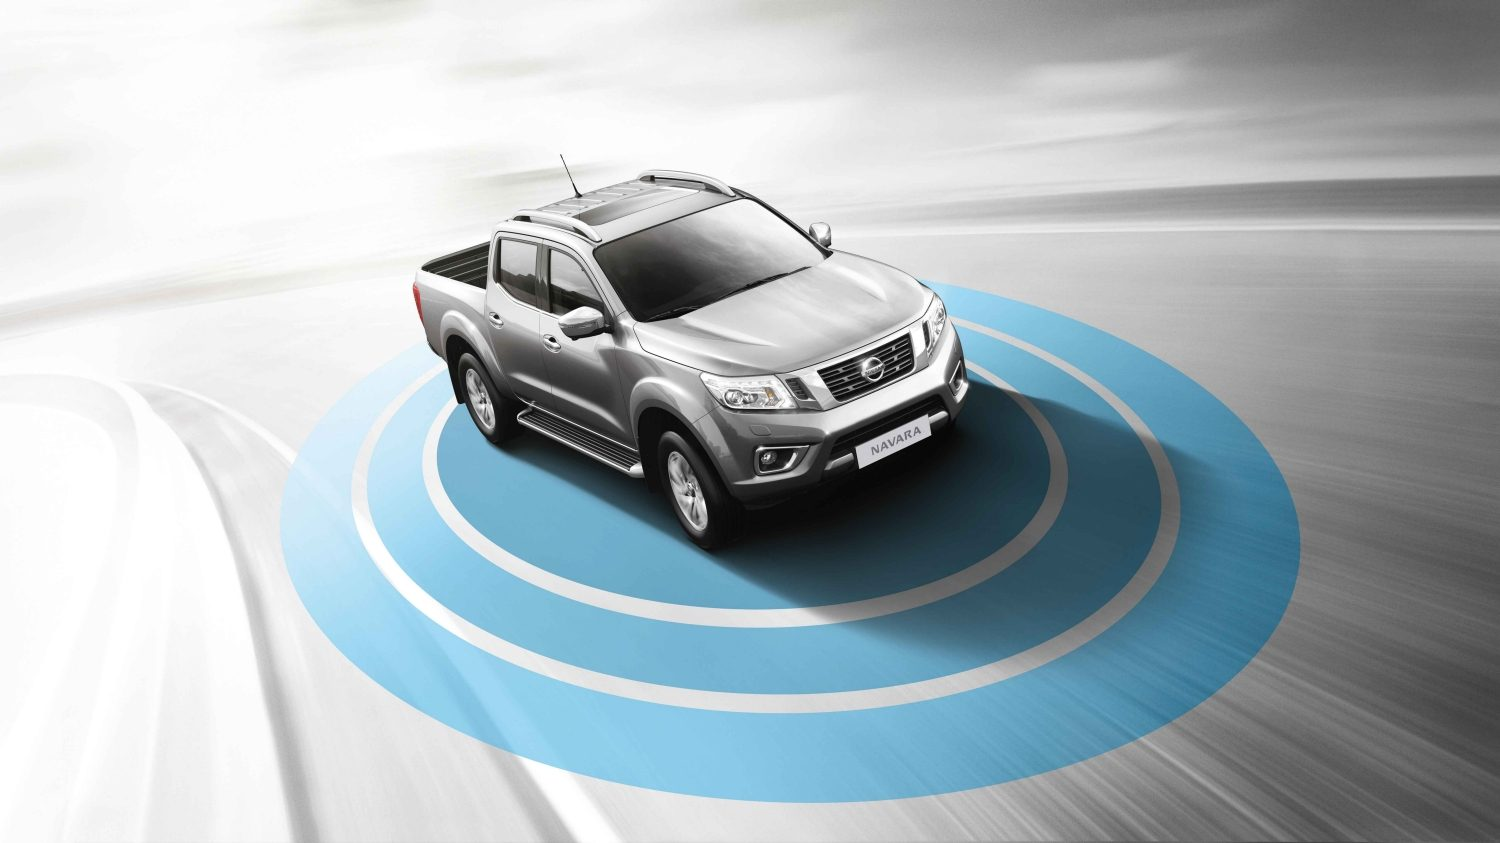 NISSAN NAVARA – NISSAN Safety Shield